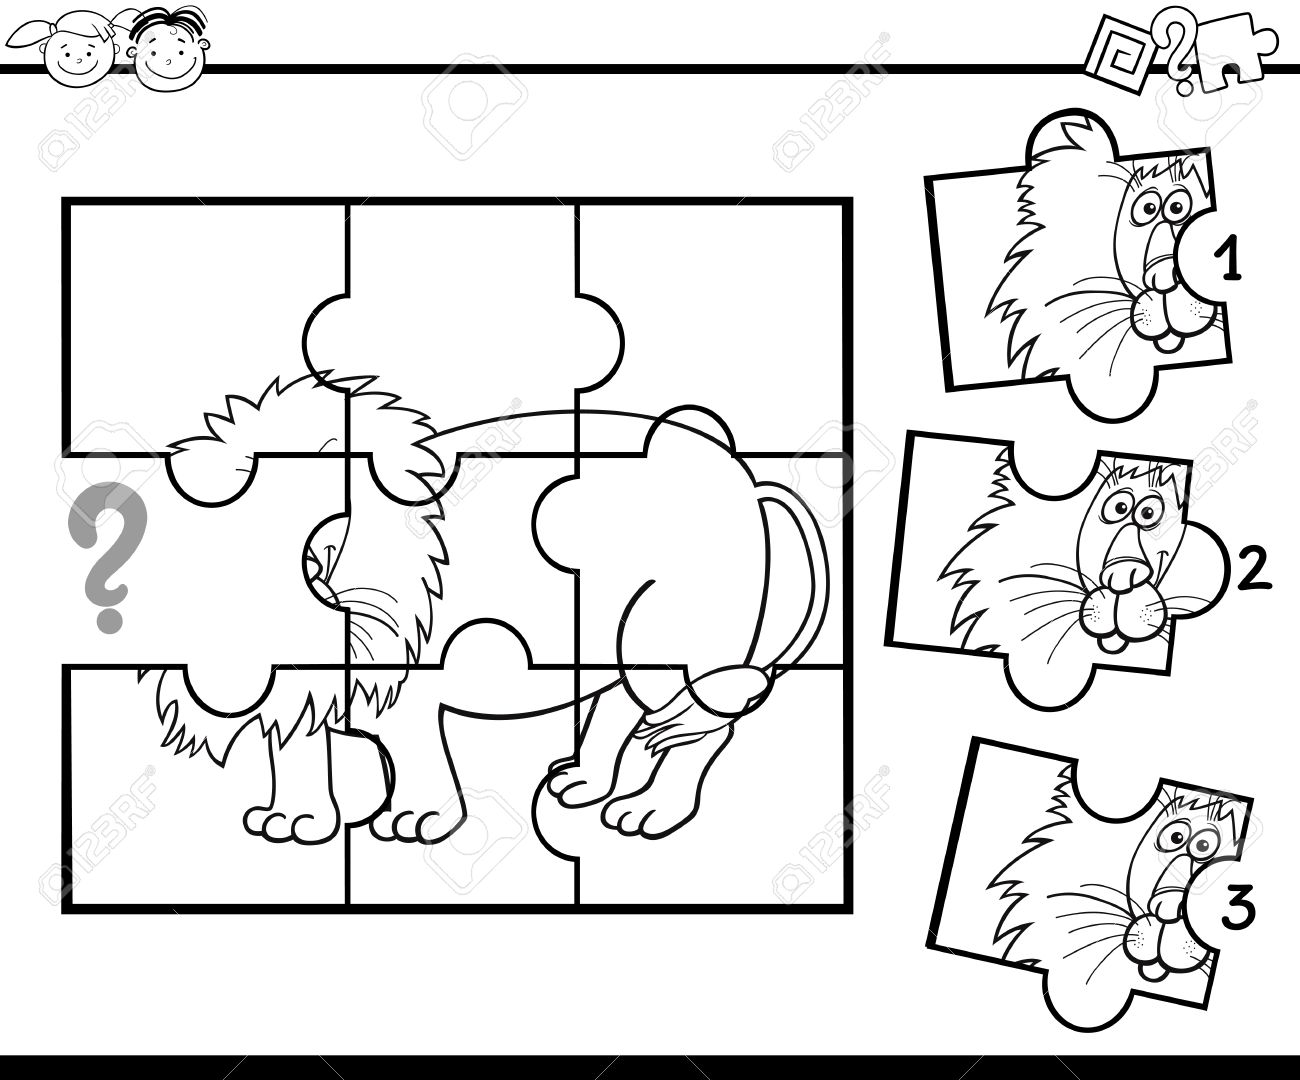 Black And White Cartoon Illustration Of Jigsaw Puzzle Education Game For Preschool Children With Lion